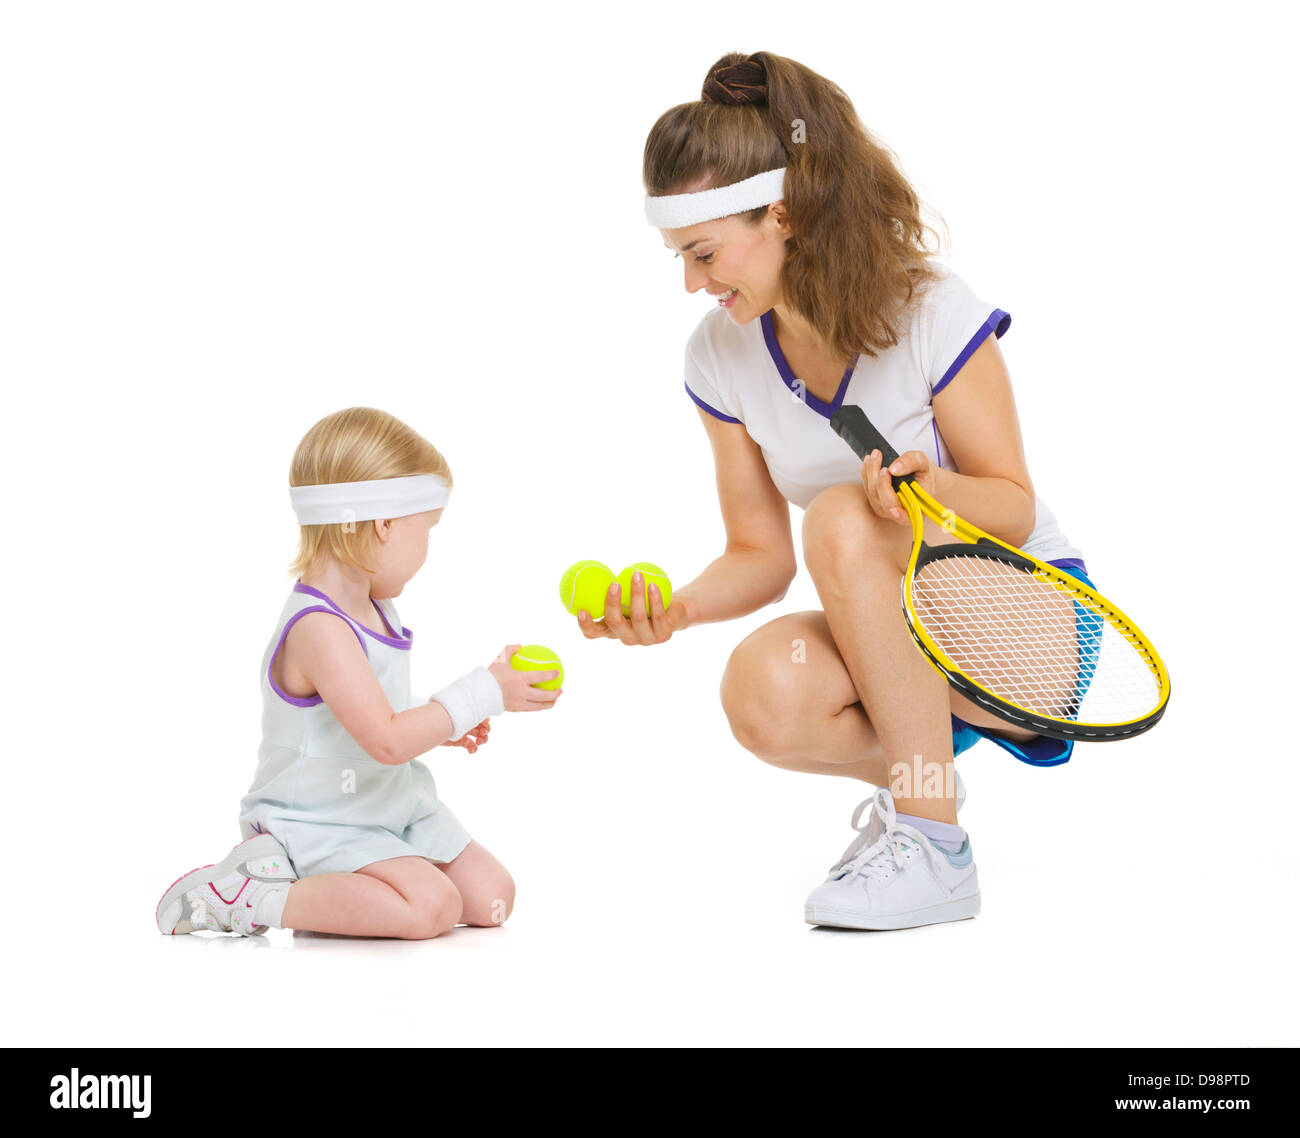 Mother and baby in tennis clothes playing - Stock Image